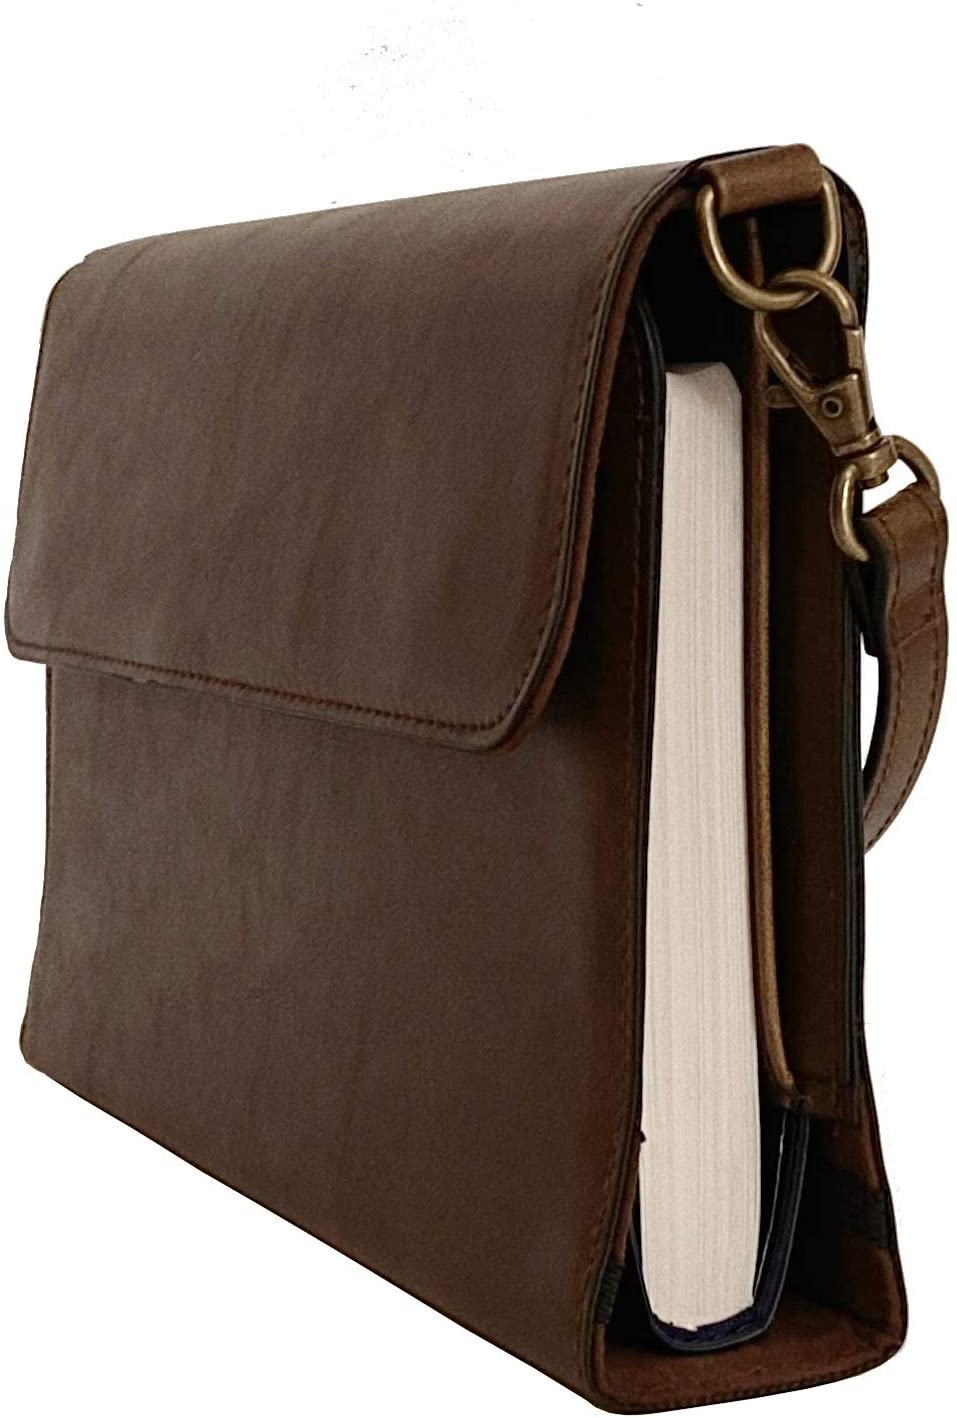 Leather Bible Covers for Women   Purse Style Case w/Removable Handle (9x6 and 8x5 inch)